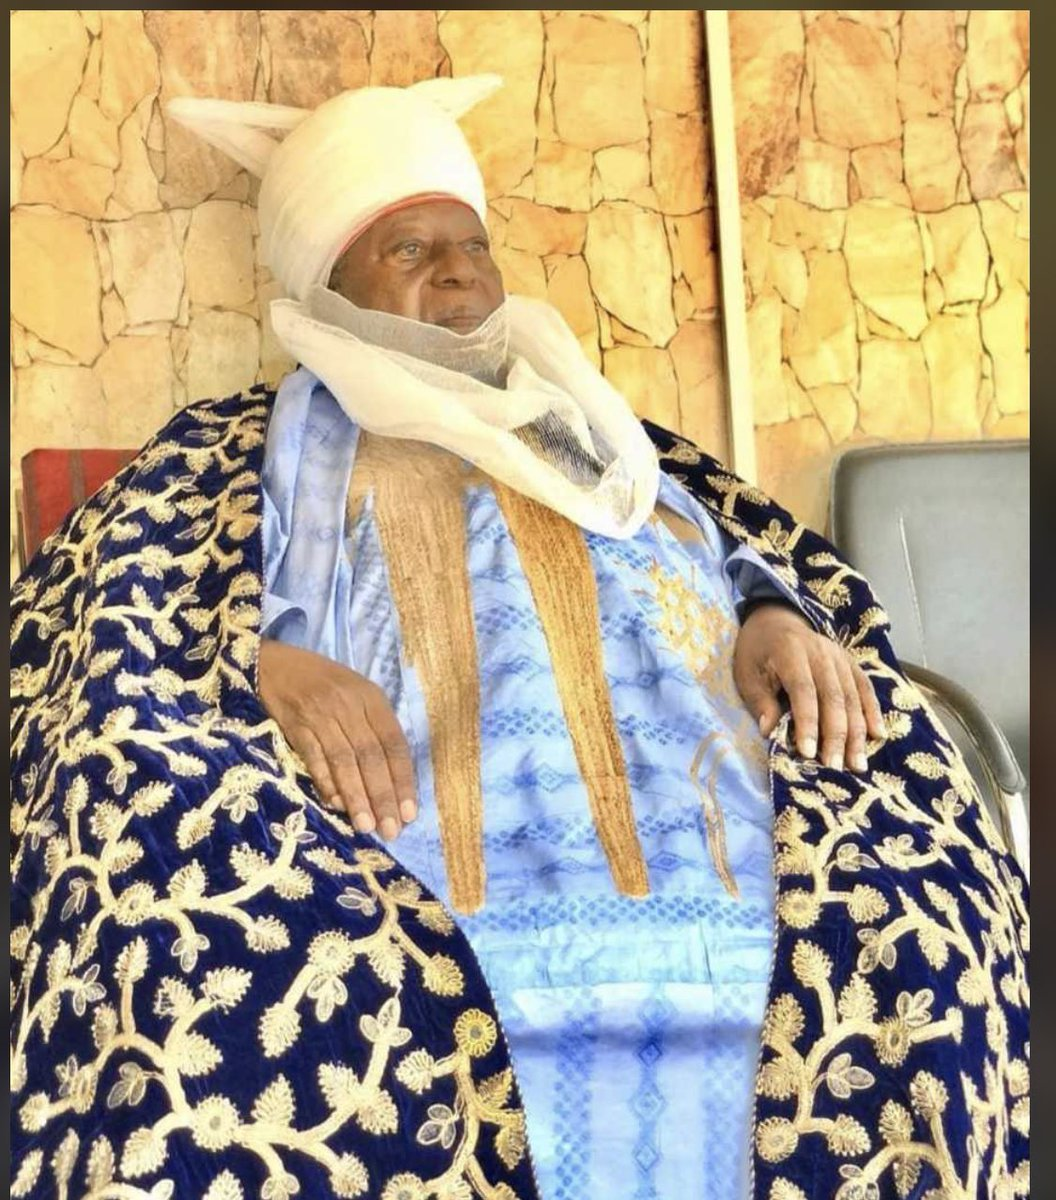 #ondisday #20September2020, the Emir of Zazzau, Alhaji (Dr.) Shehu Idris died at the age of 84, he had been on the throne for over 40 years. https://t.co/xX4zt0V3sm